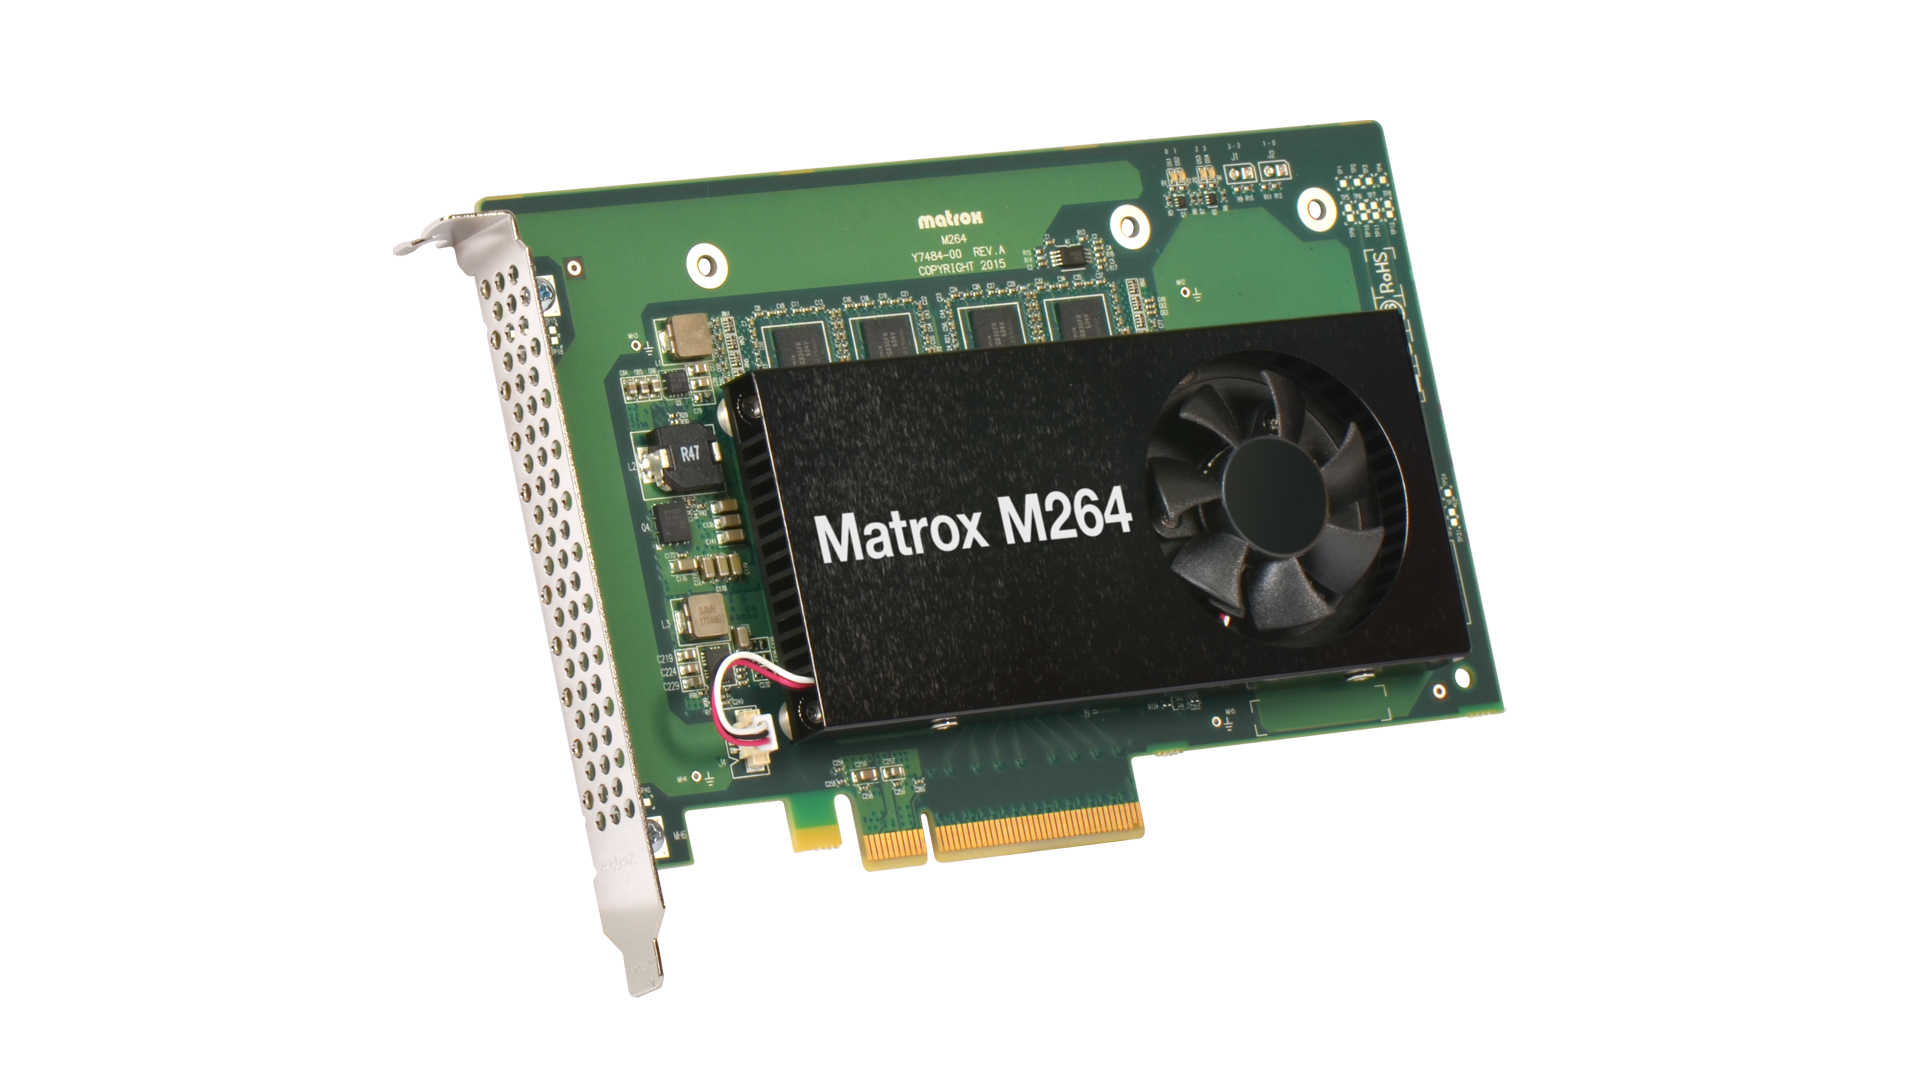 Matrox m264 Codec Card